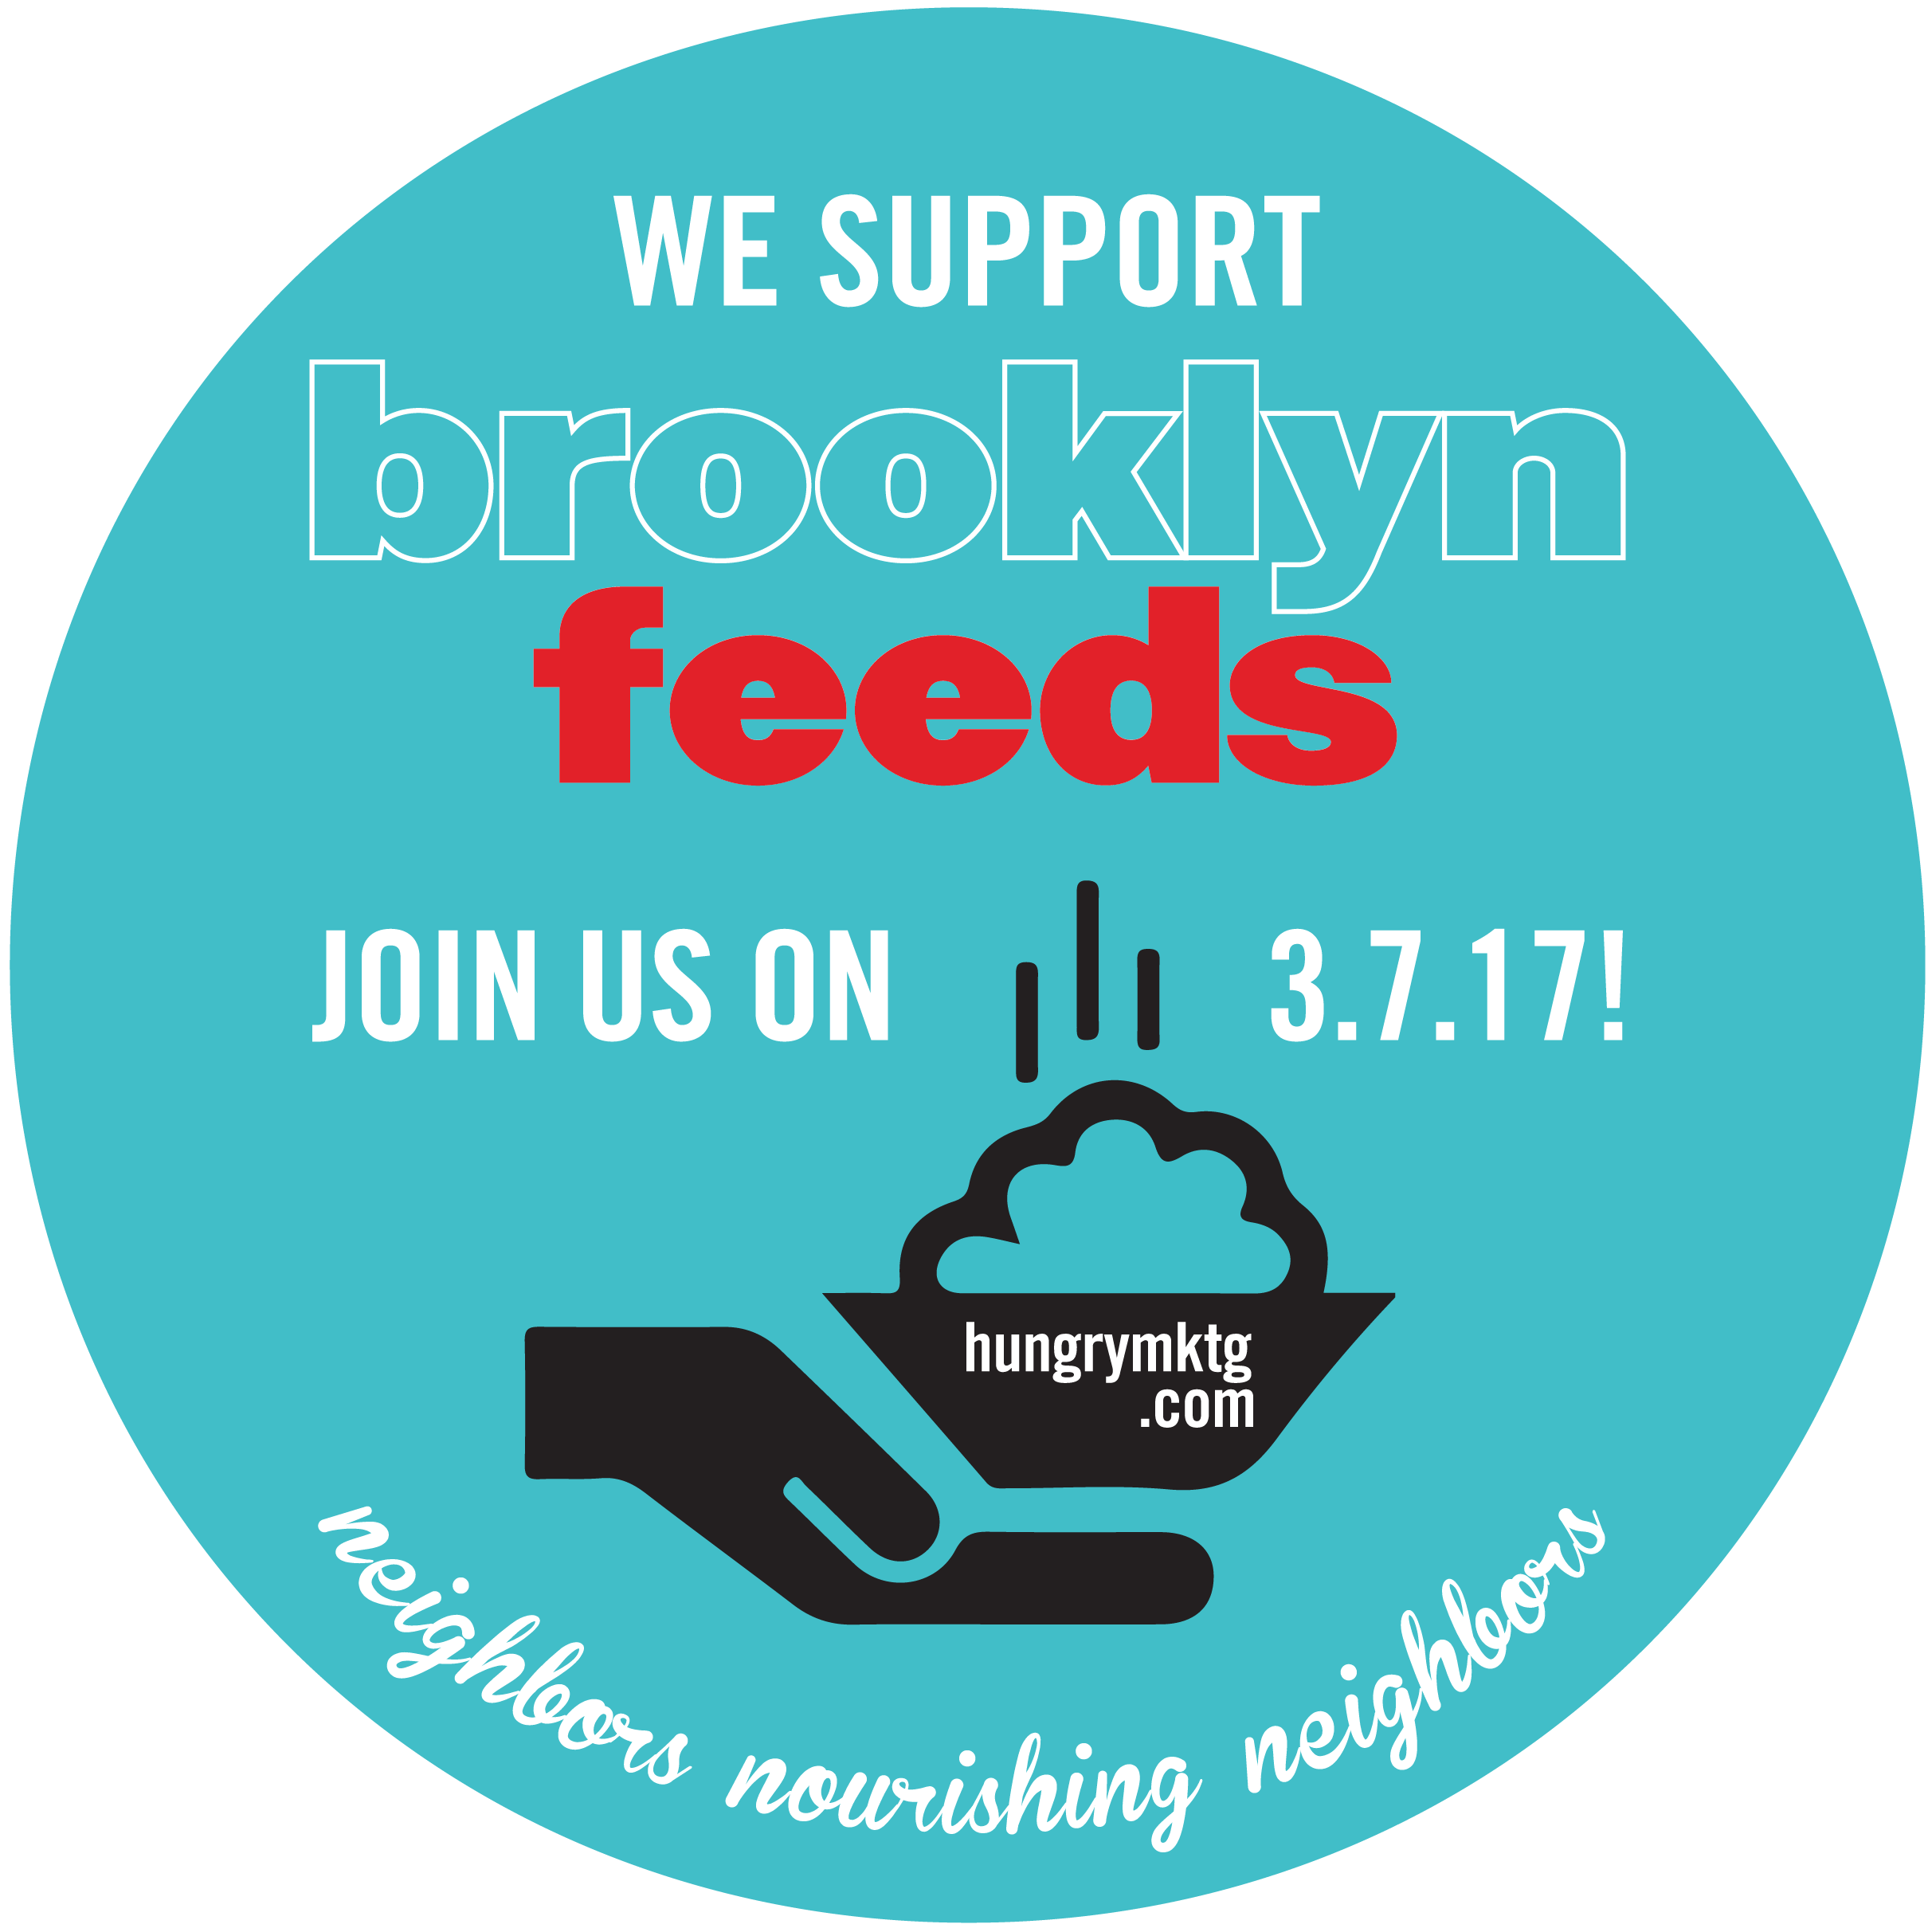 Brooklyn Feeds, 3.7.17, A Day of Action Brought to You by Hungry Marketing